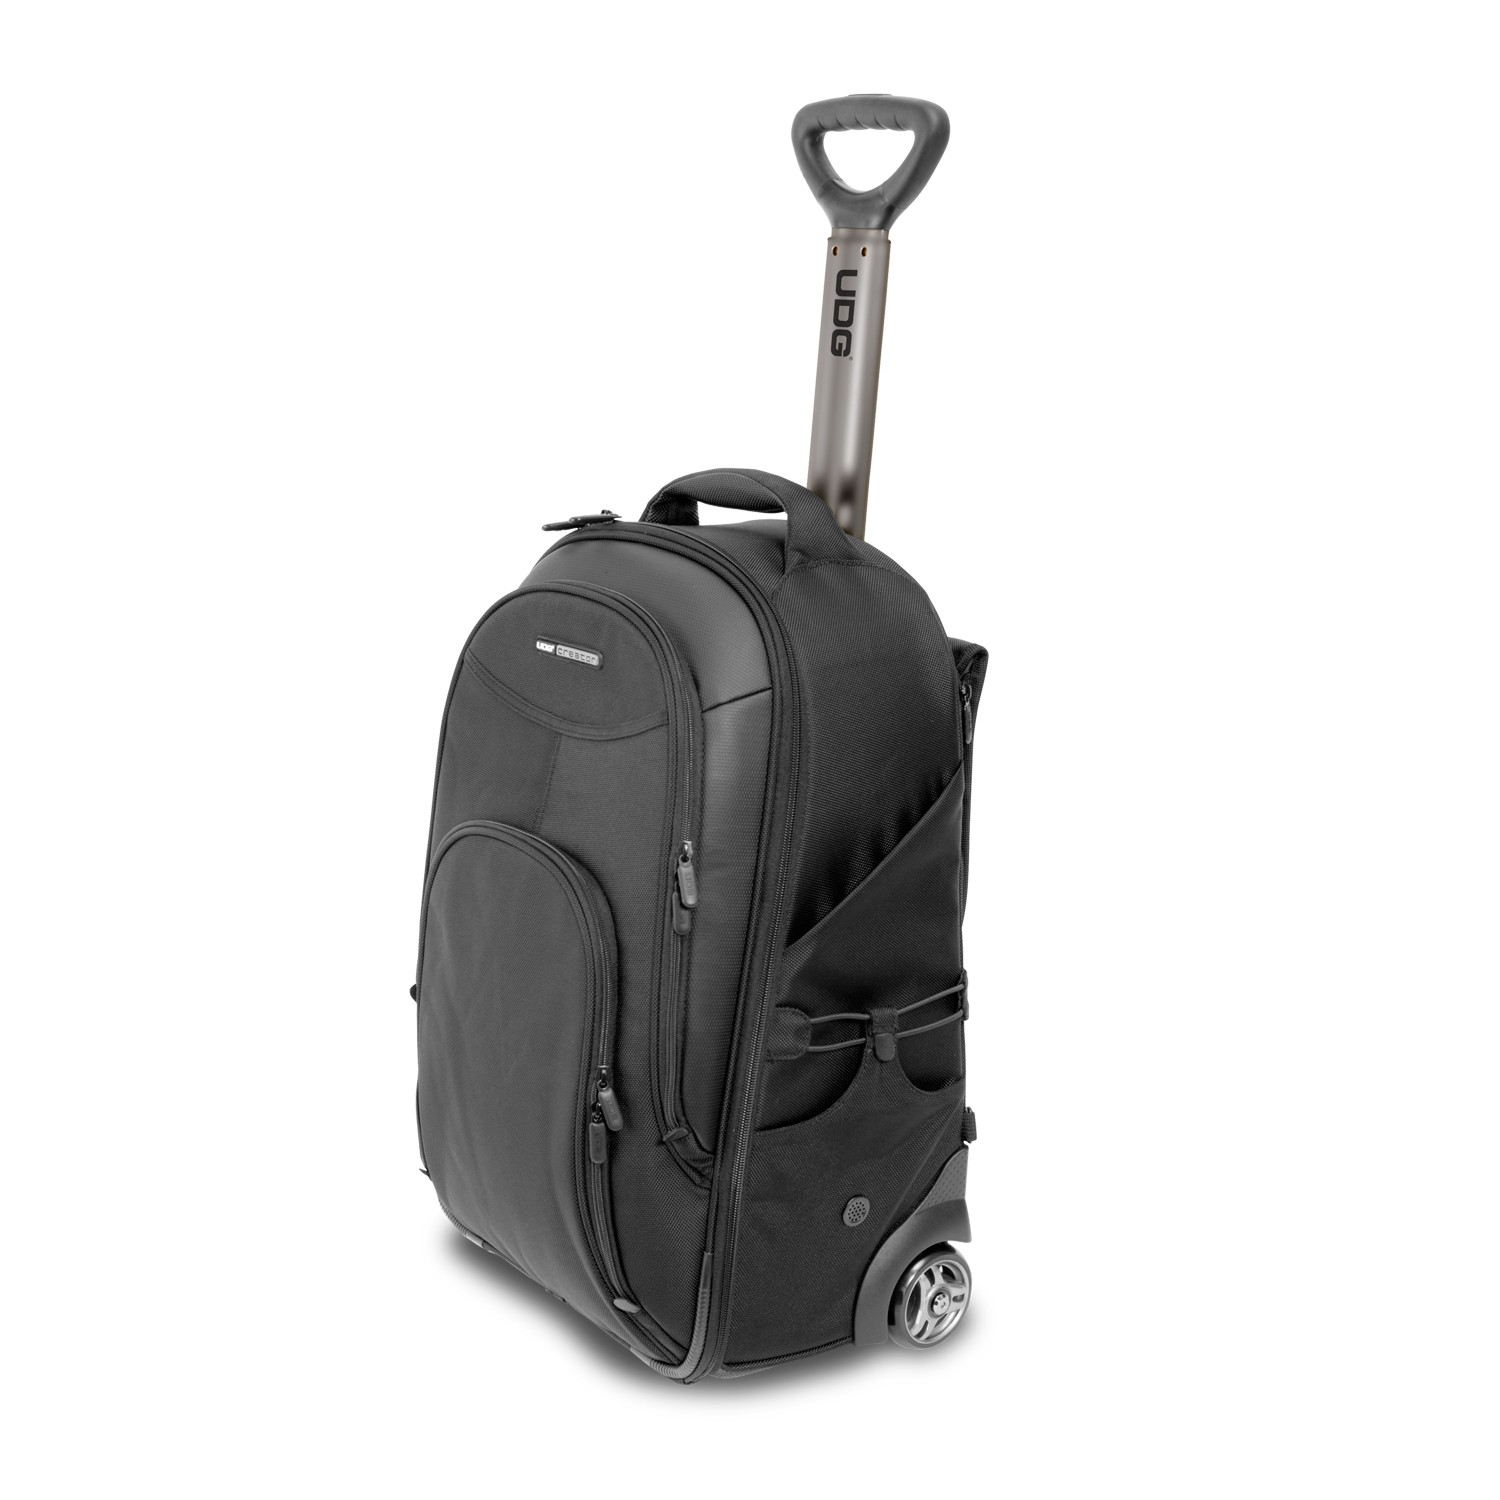 Wheeled Laptop Backpack Rg41wY2r